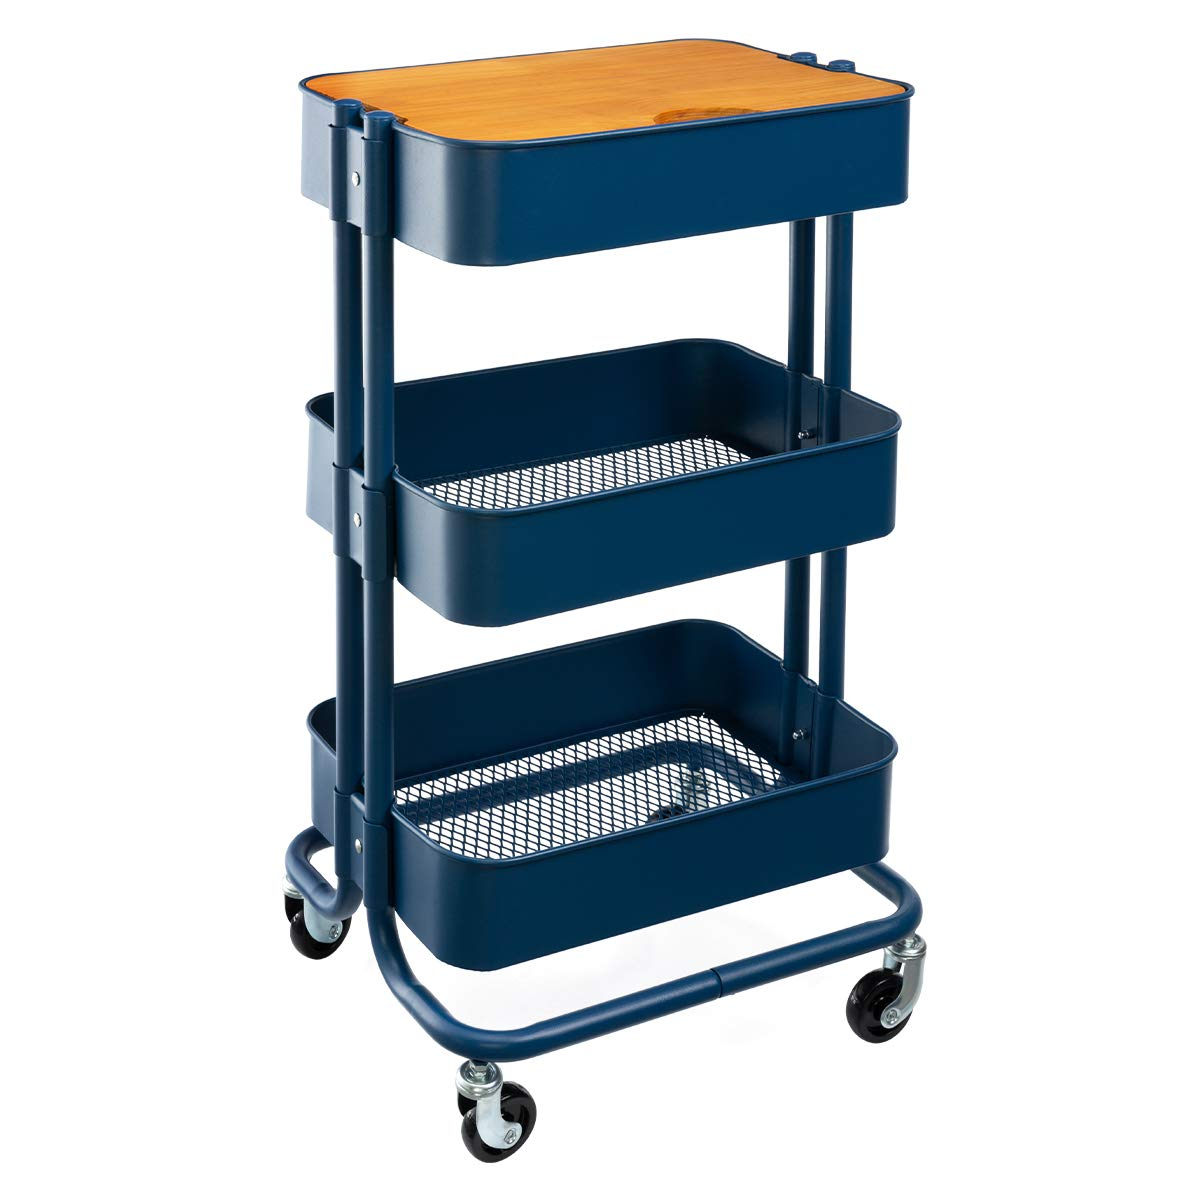 HollyHOME 3-Tier Metal Utility Service Cart Rolling Storage Shelves with Planks, Movable Storage Utility Cart, Navy Blue by HollyHOME